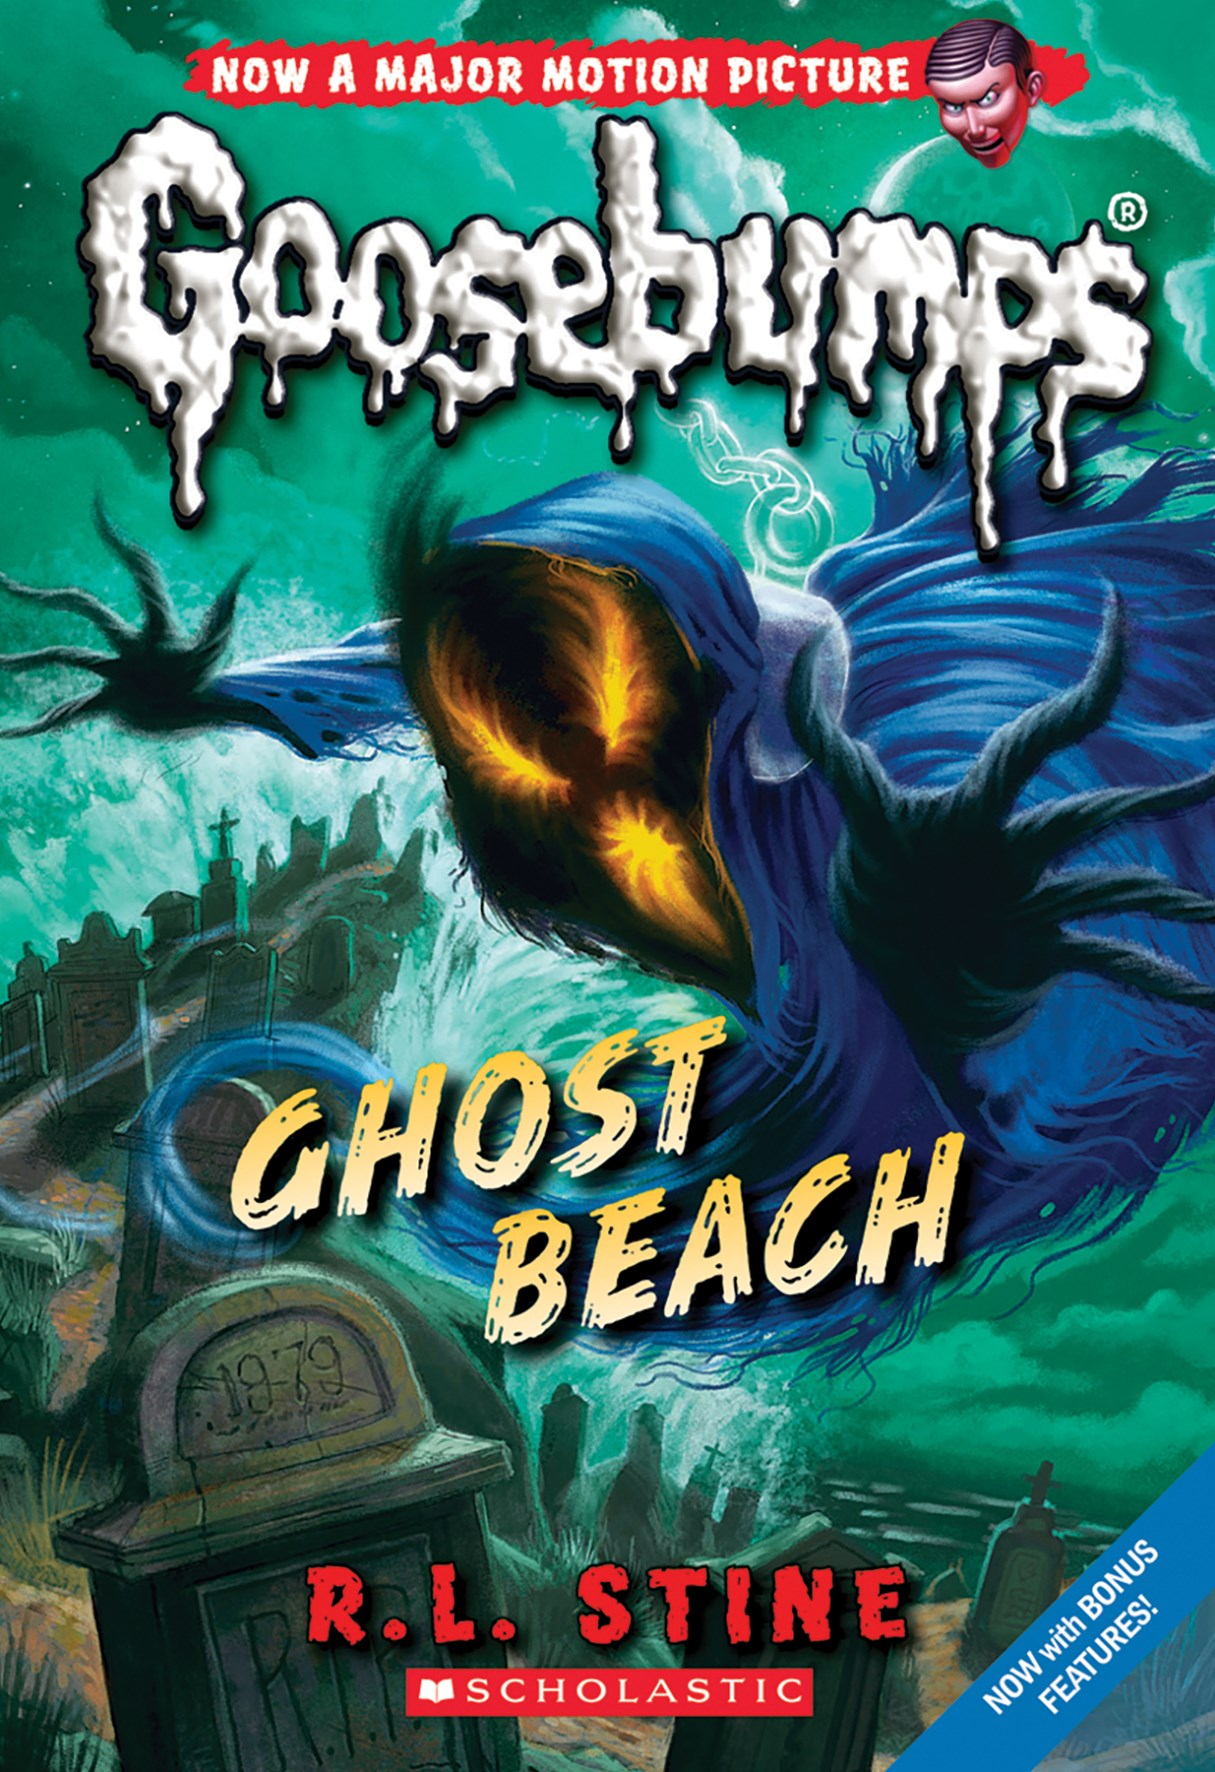 Ghost Beach (Goosebumps Classic Book 15)